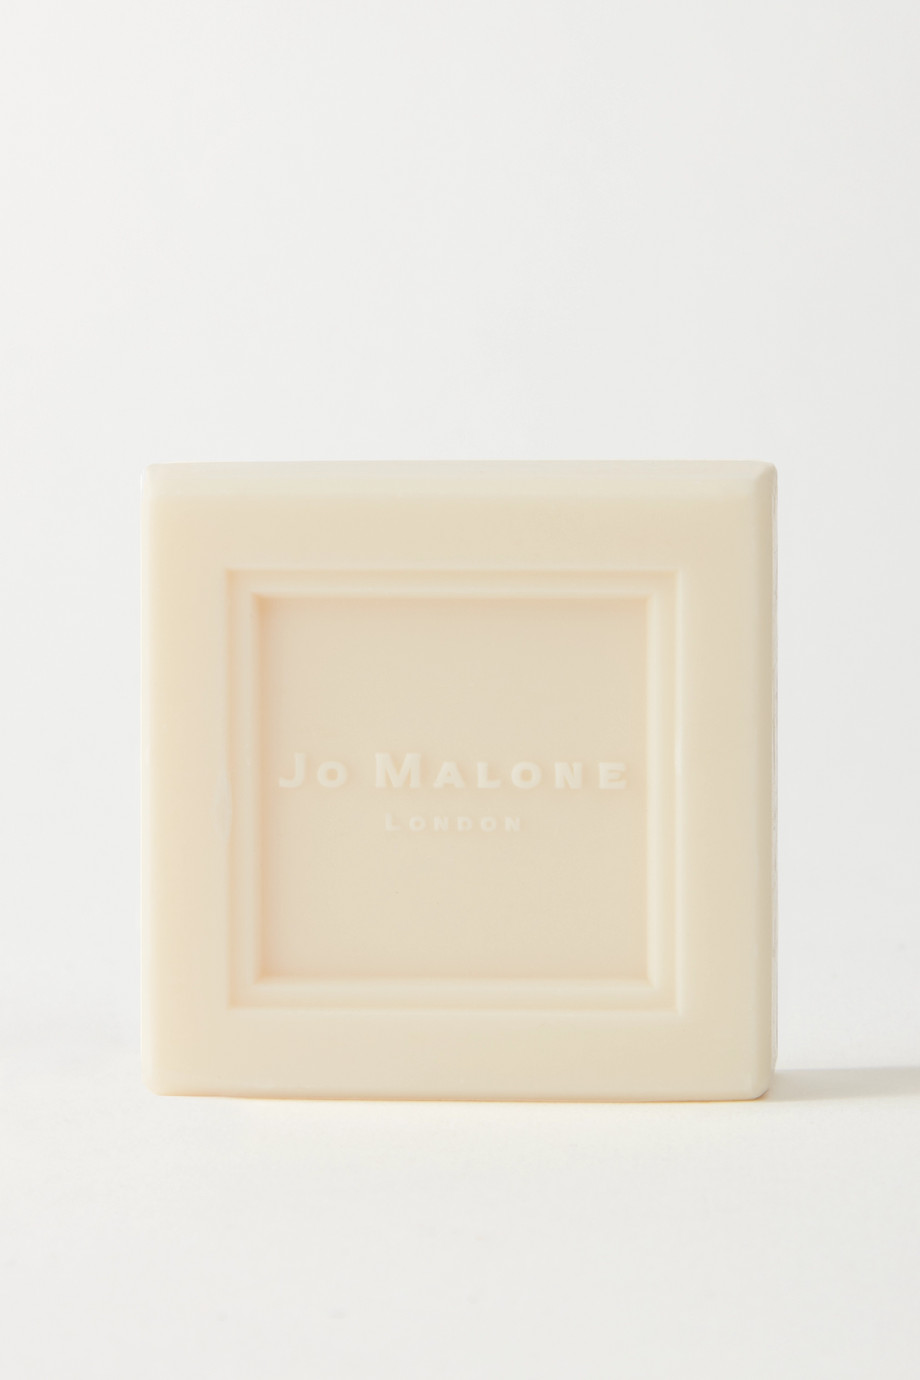 Jo Malone London Lime Basil & Mandarin Soap, 100g